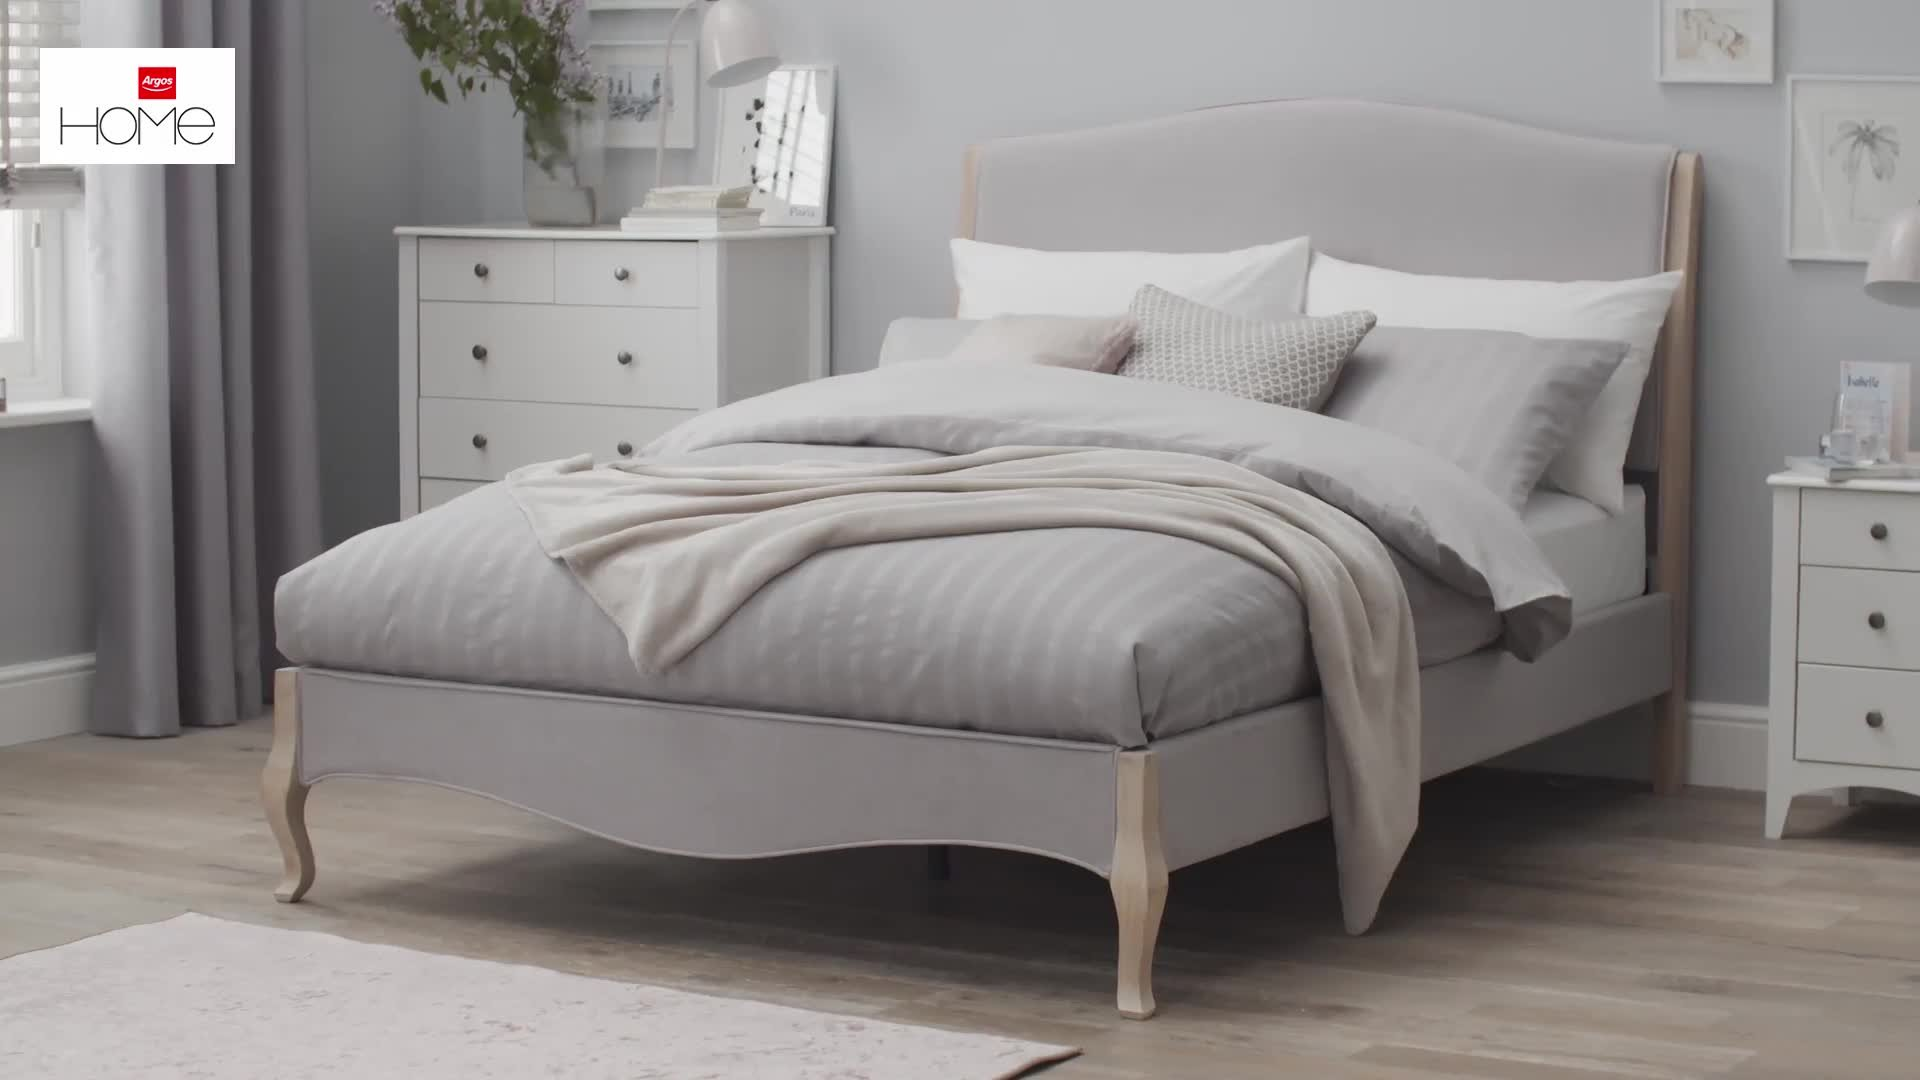 Buy Argos Home Candice Double Bed Frame - Natural  Bed frames  Argos